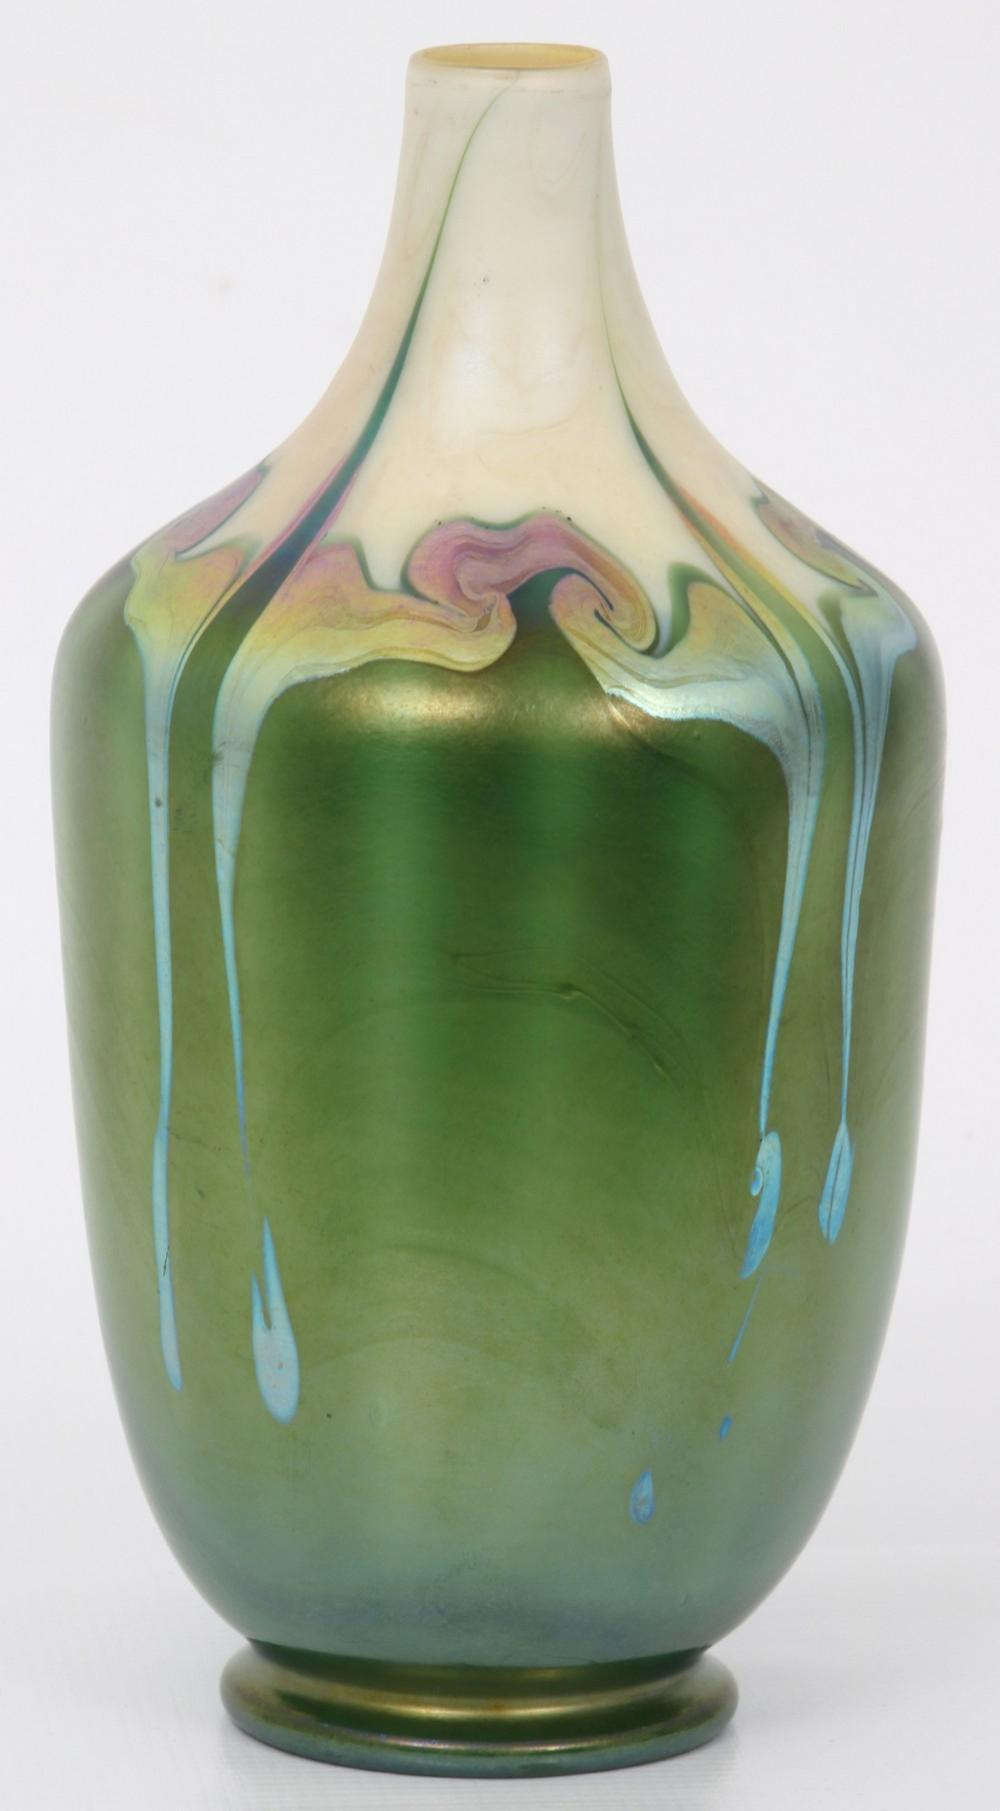 Tiffany Studios Decorated Vase